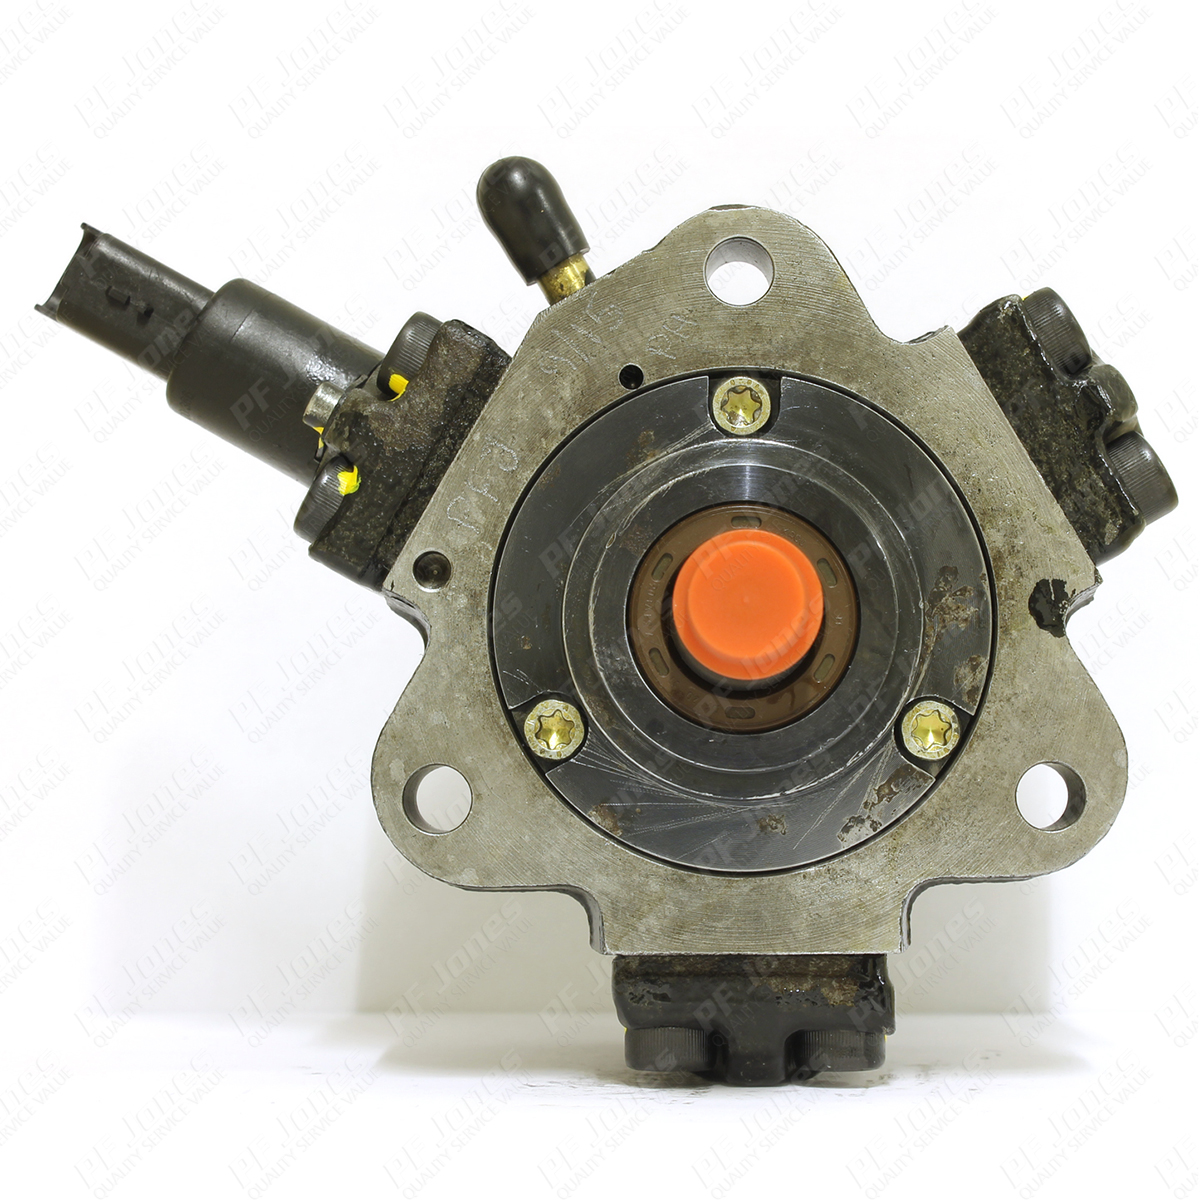 Peugeot 307 2 0 HDI 2000-2005 Reconditioned Bosch Diesel Fuel Pump